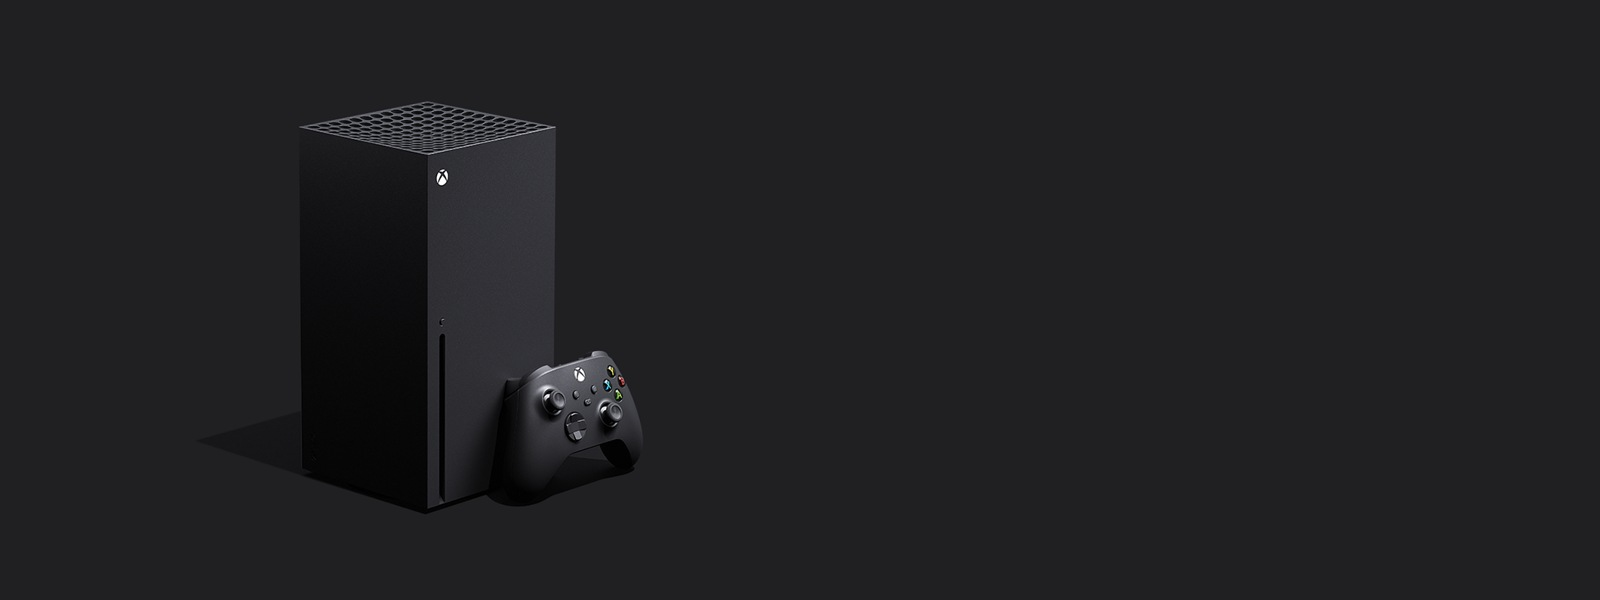 Xbox Series X console and controller.